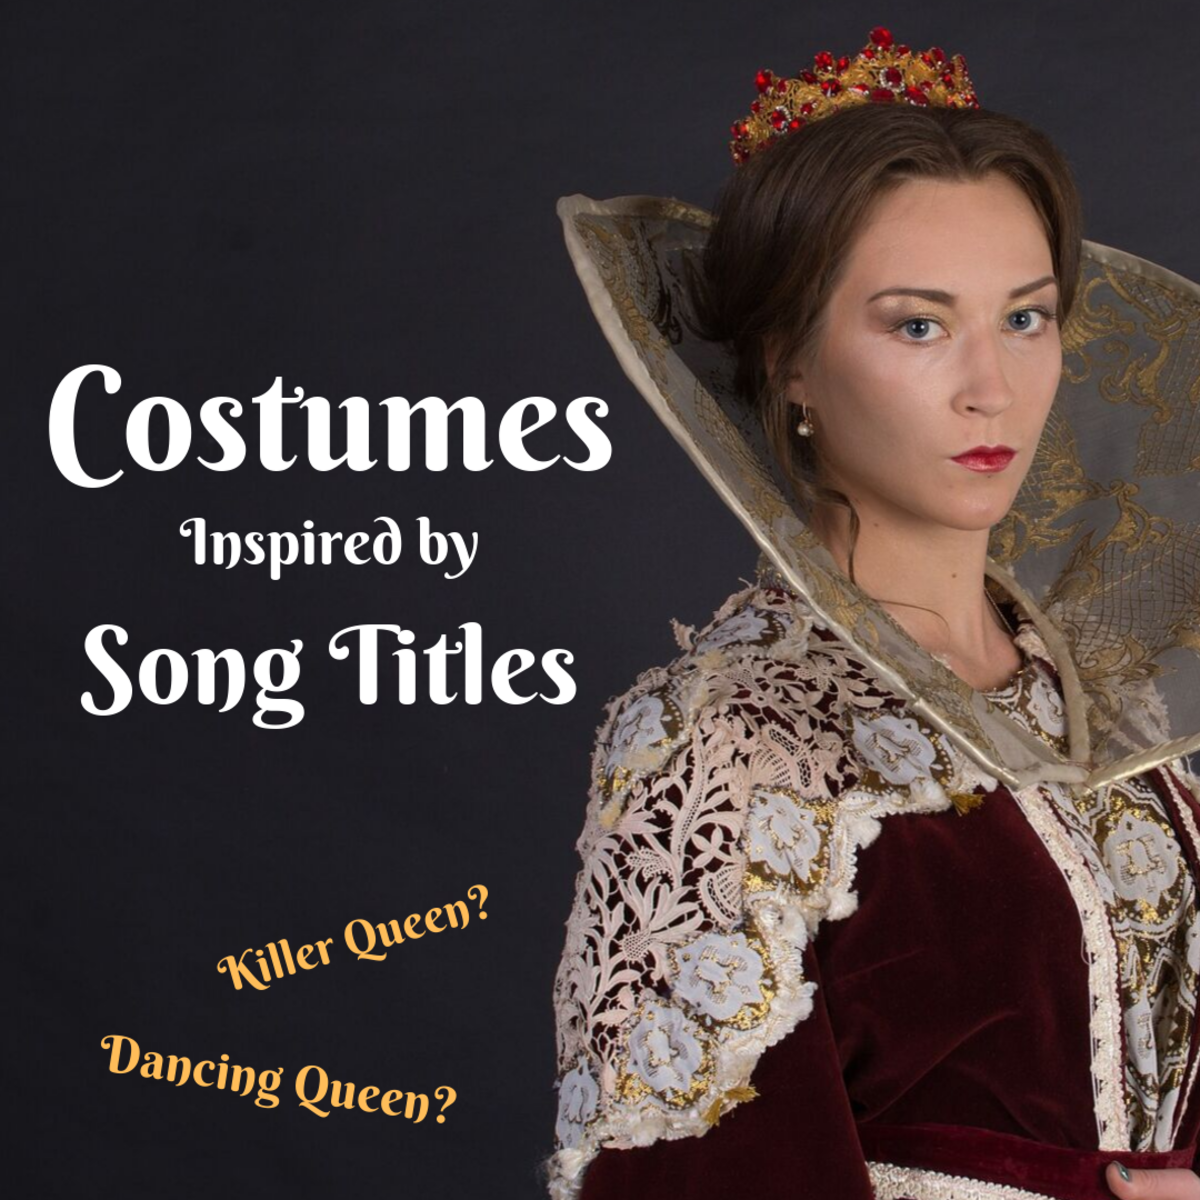 Have you been invited to a song title-themed costume party? Get some ideas for how to dress!